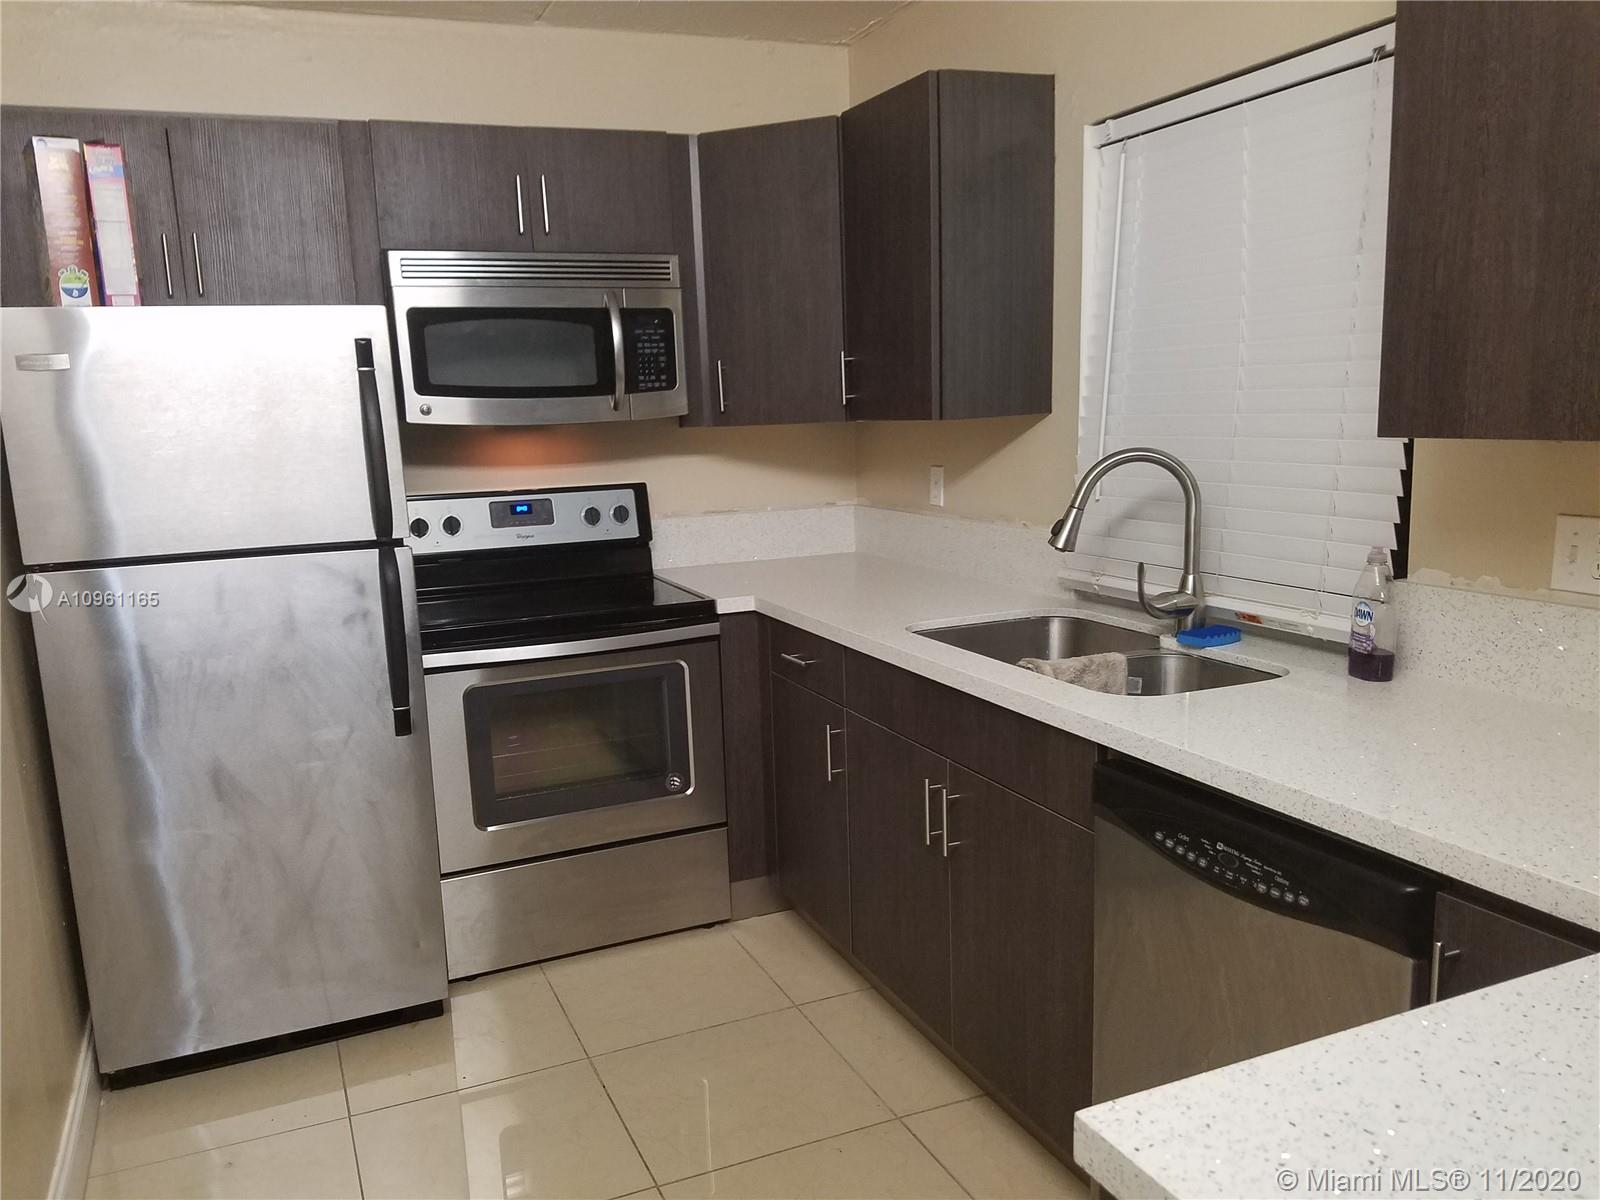 Do not miss the opportunity to own this beautiful upgraded condo with a large balcony, walk in closet, upgraded kitchen, new washer and dryer in a condo association with low association fee with many amenities like pool, tennis court and gym. The condo is currently rented for $1,300 to a Section 8 tenant. Great investment if you have a few months left on your lease but do not want to miss the opportunity of the low interest rates. Do not wait until it is too late...